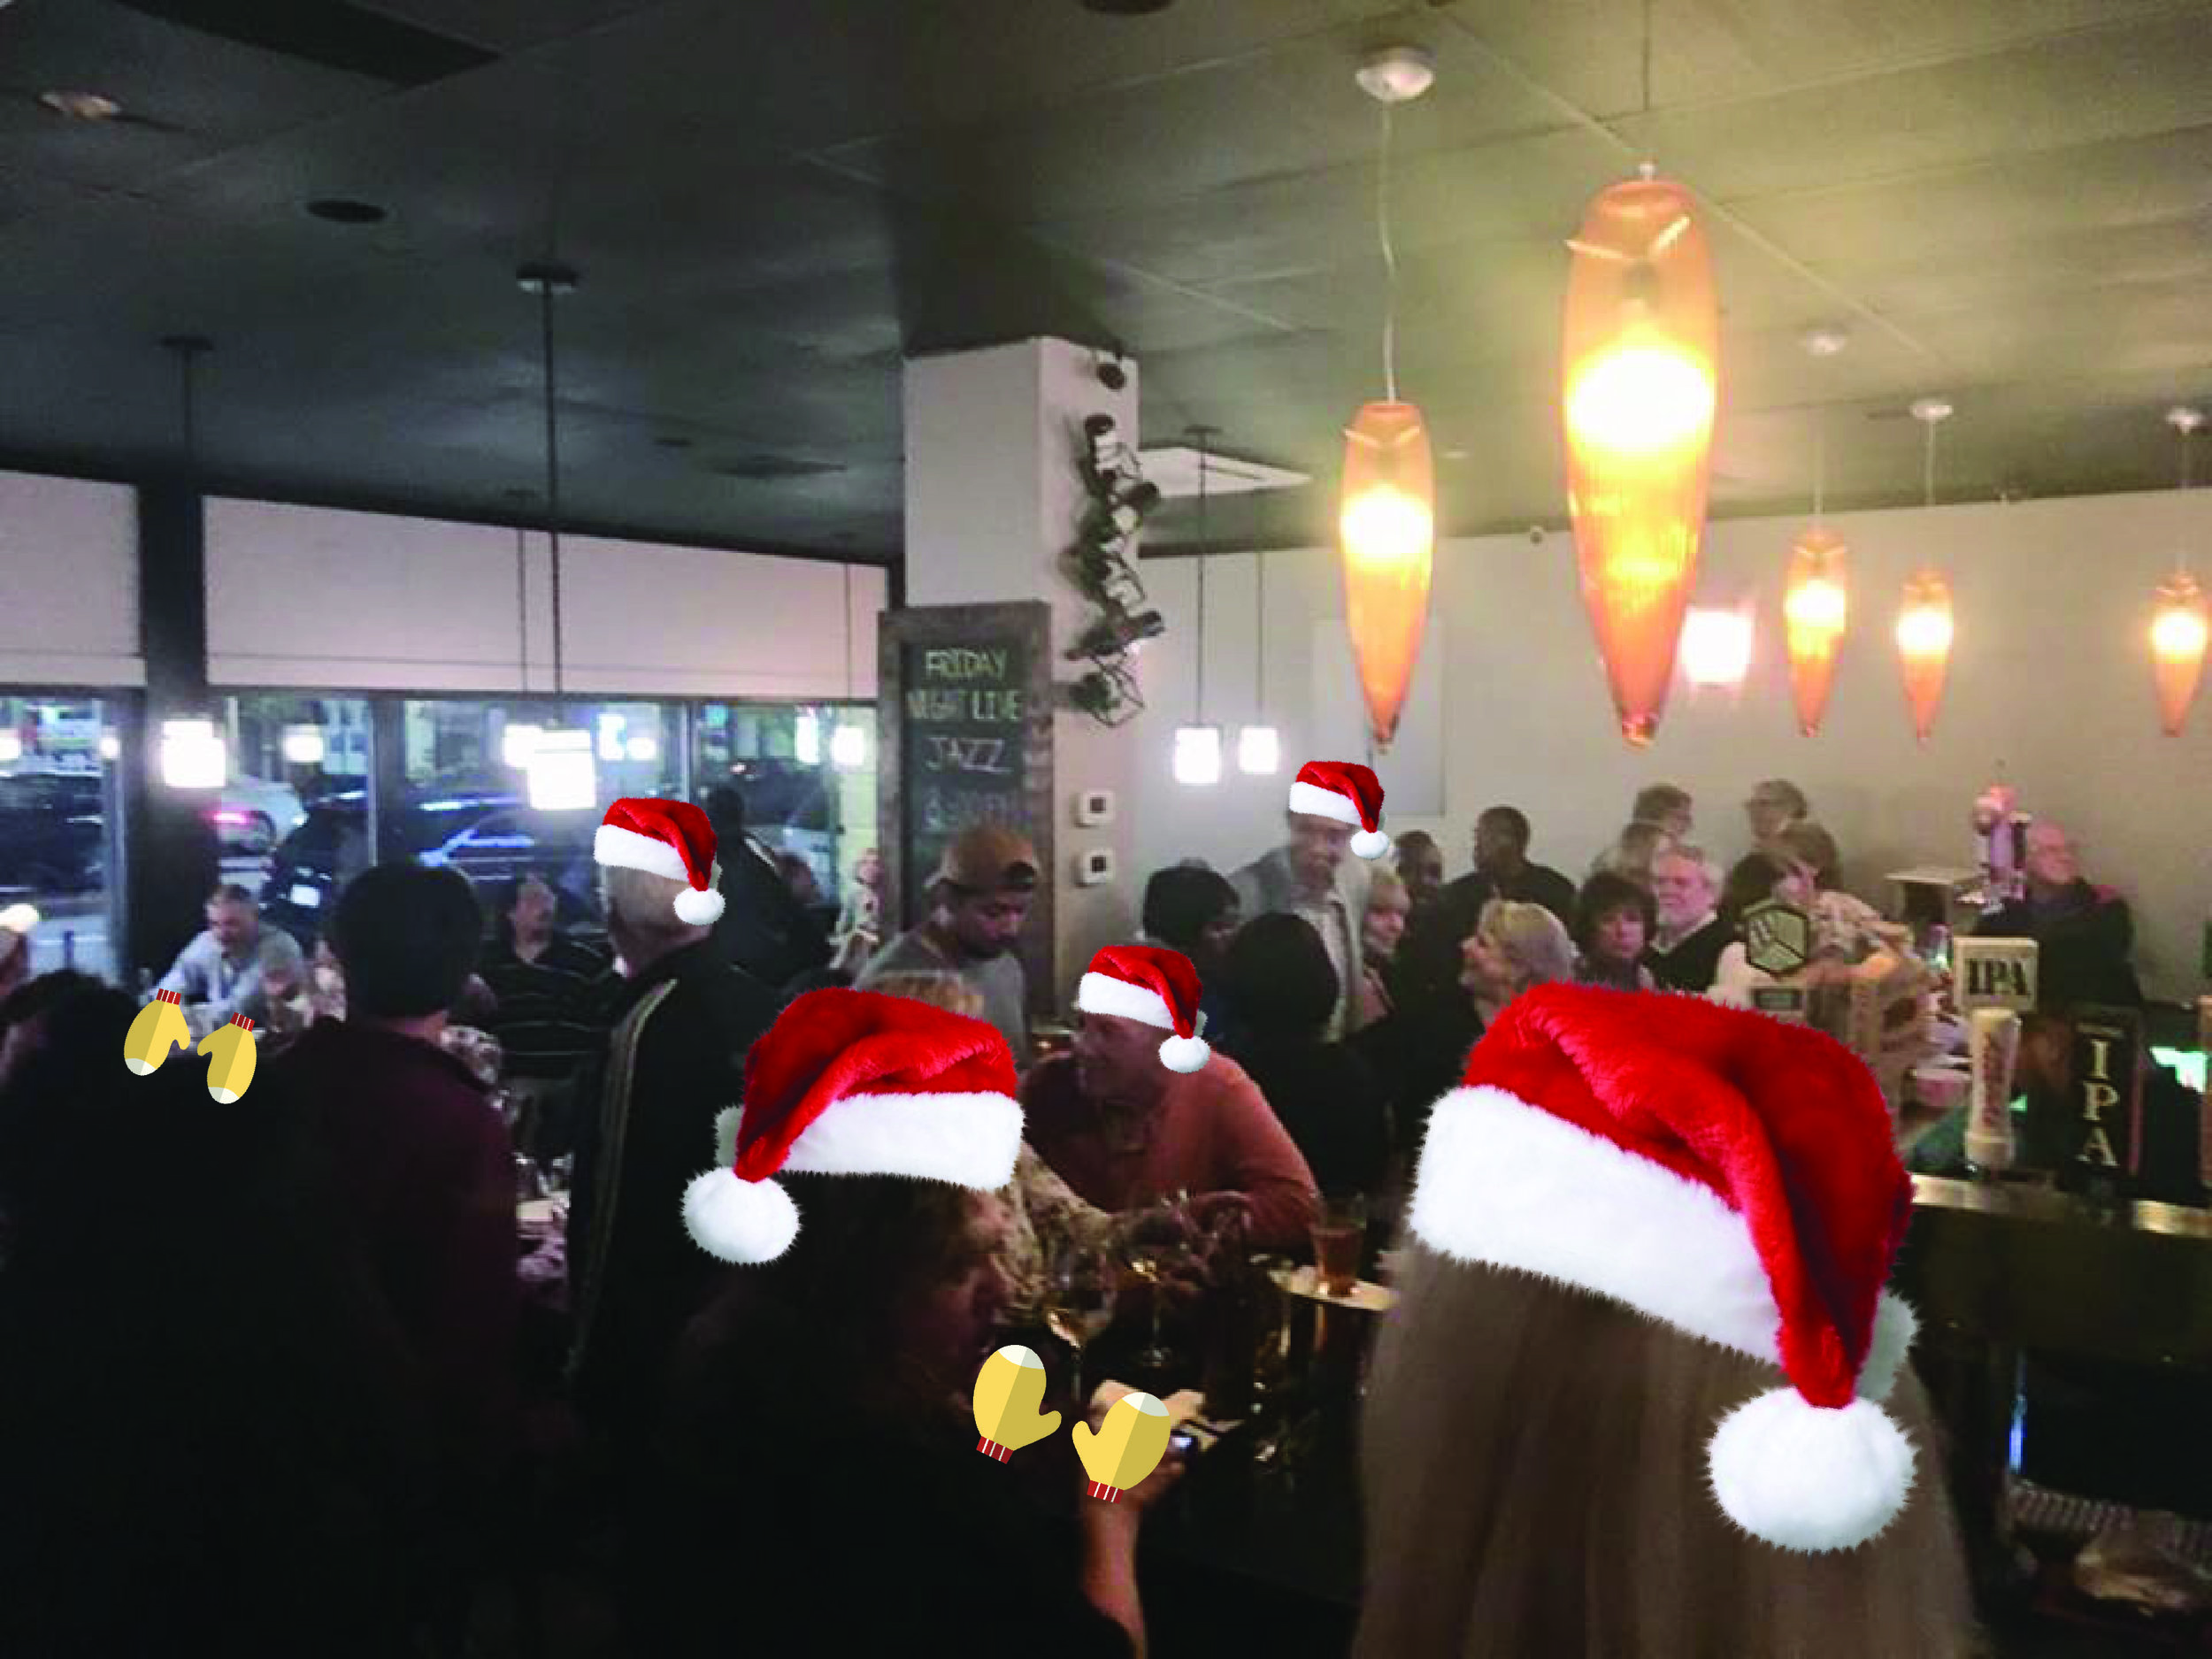 10 pm -  Pho Dakao - 101 Concord Street, Park at Concord/Howard Streets lot- Holiday Gear winner, Zeke Martin band, storefront window voting